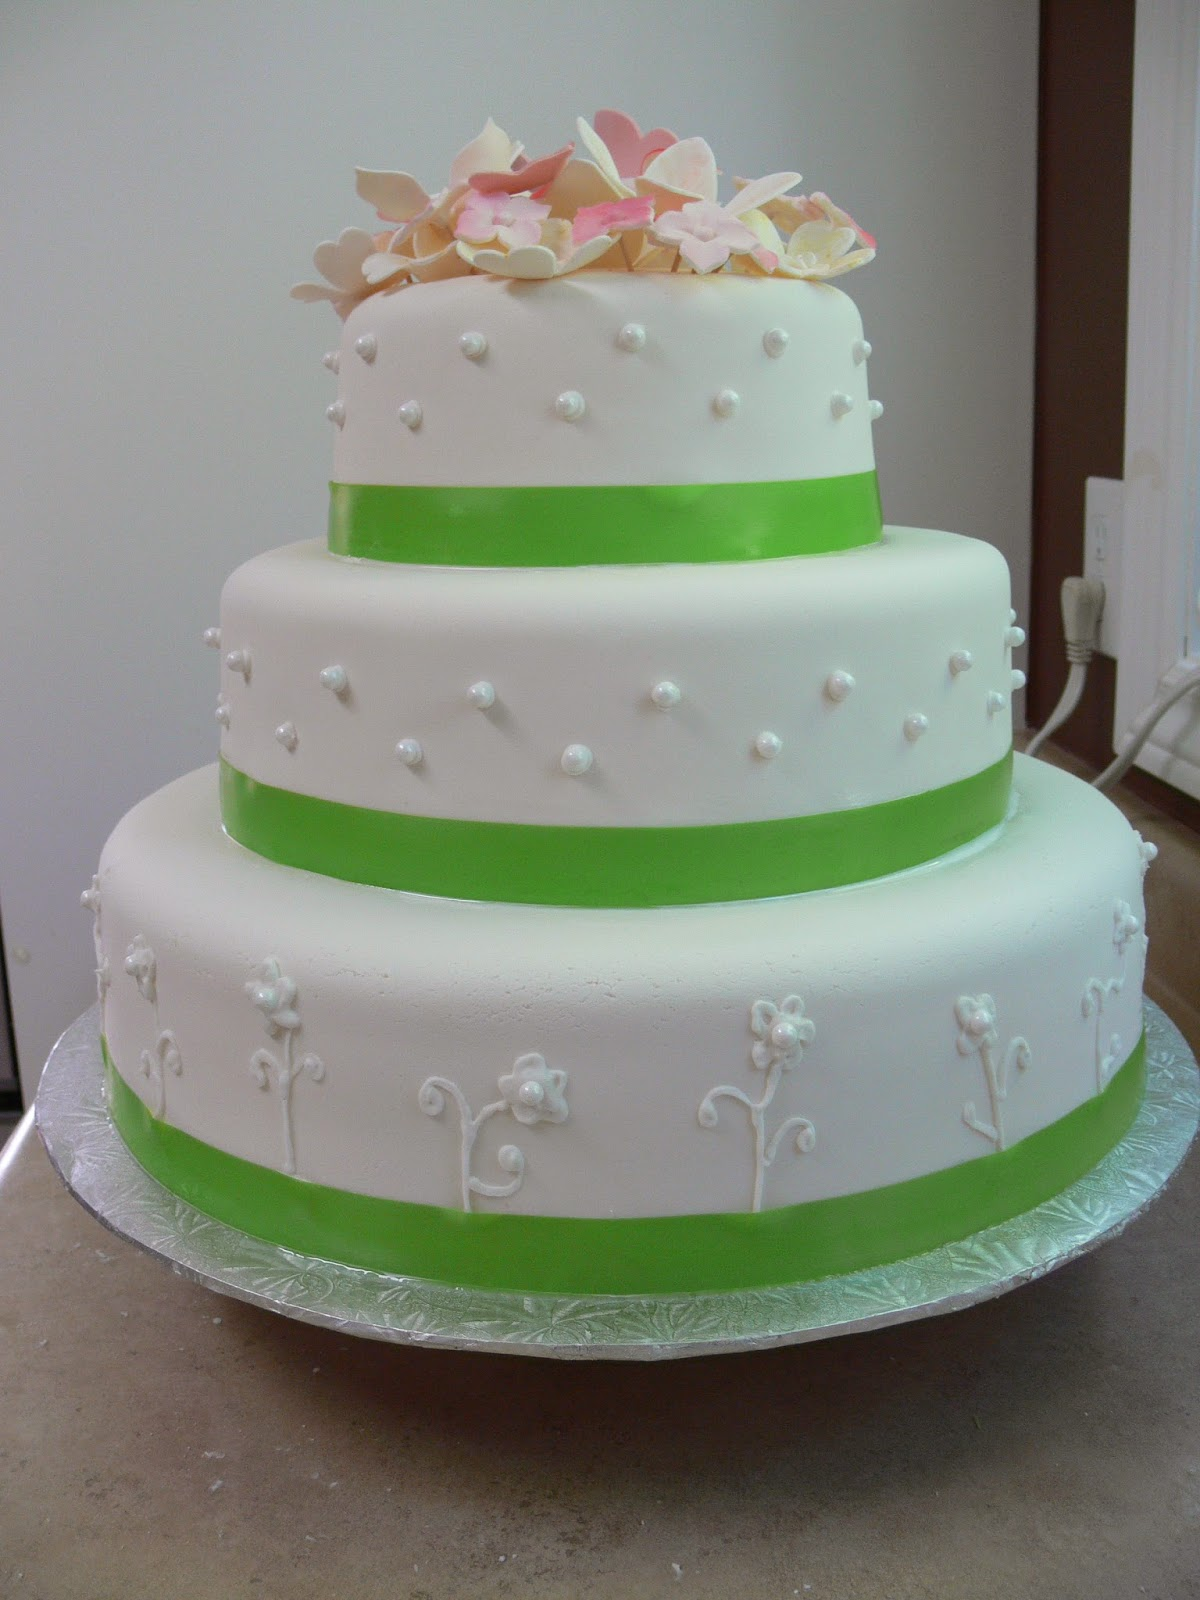 Spring Wedding Cake With Pink Flowers Candy Pearls And Green Ribbon